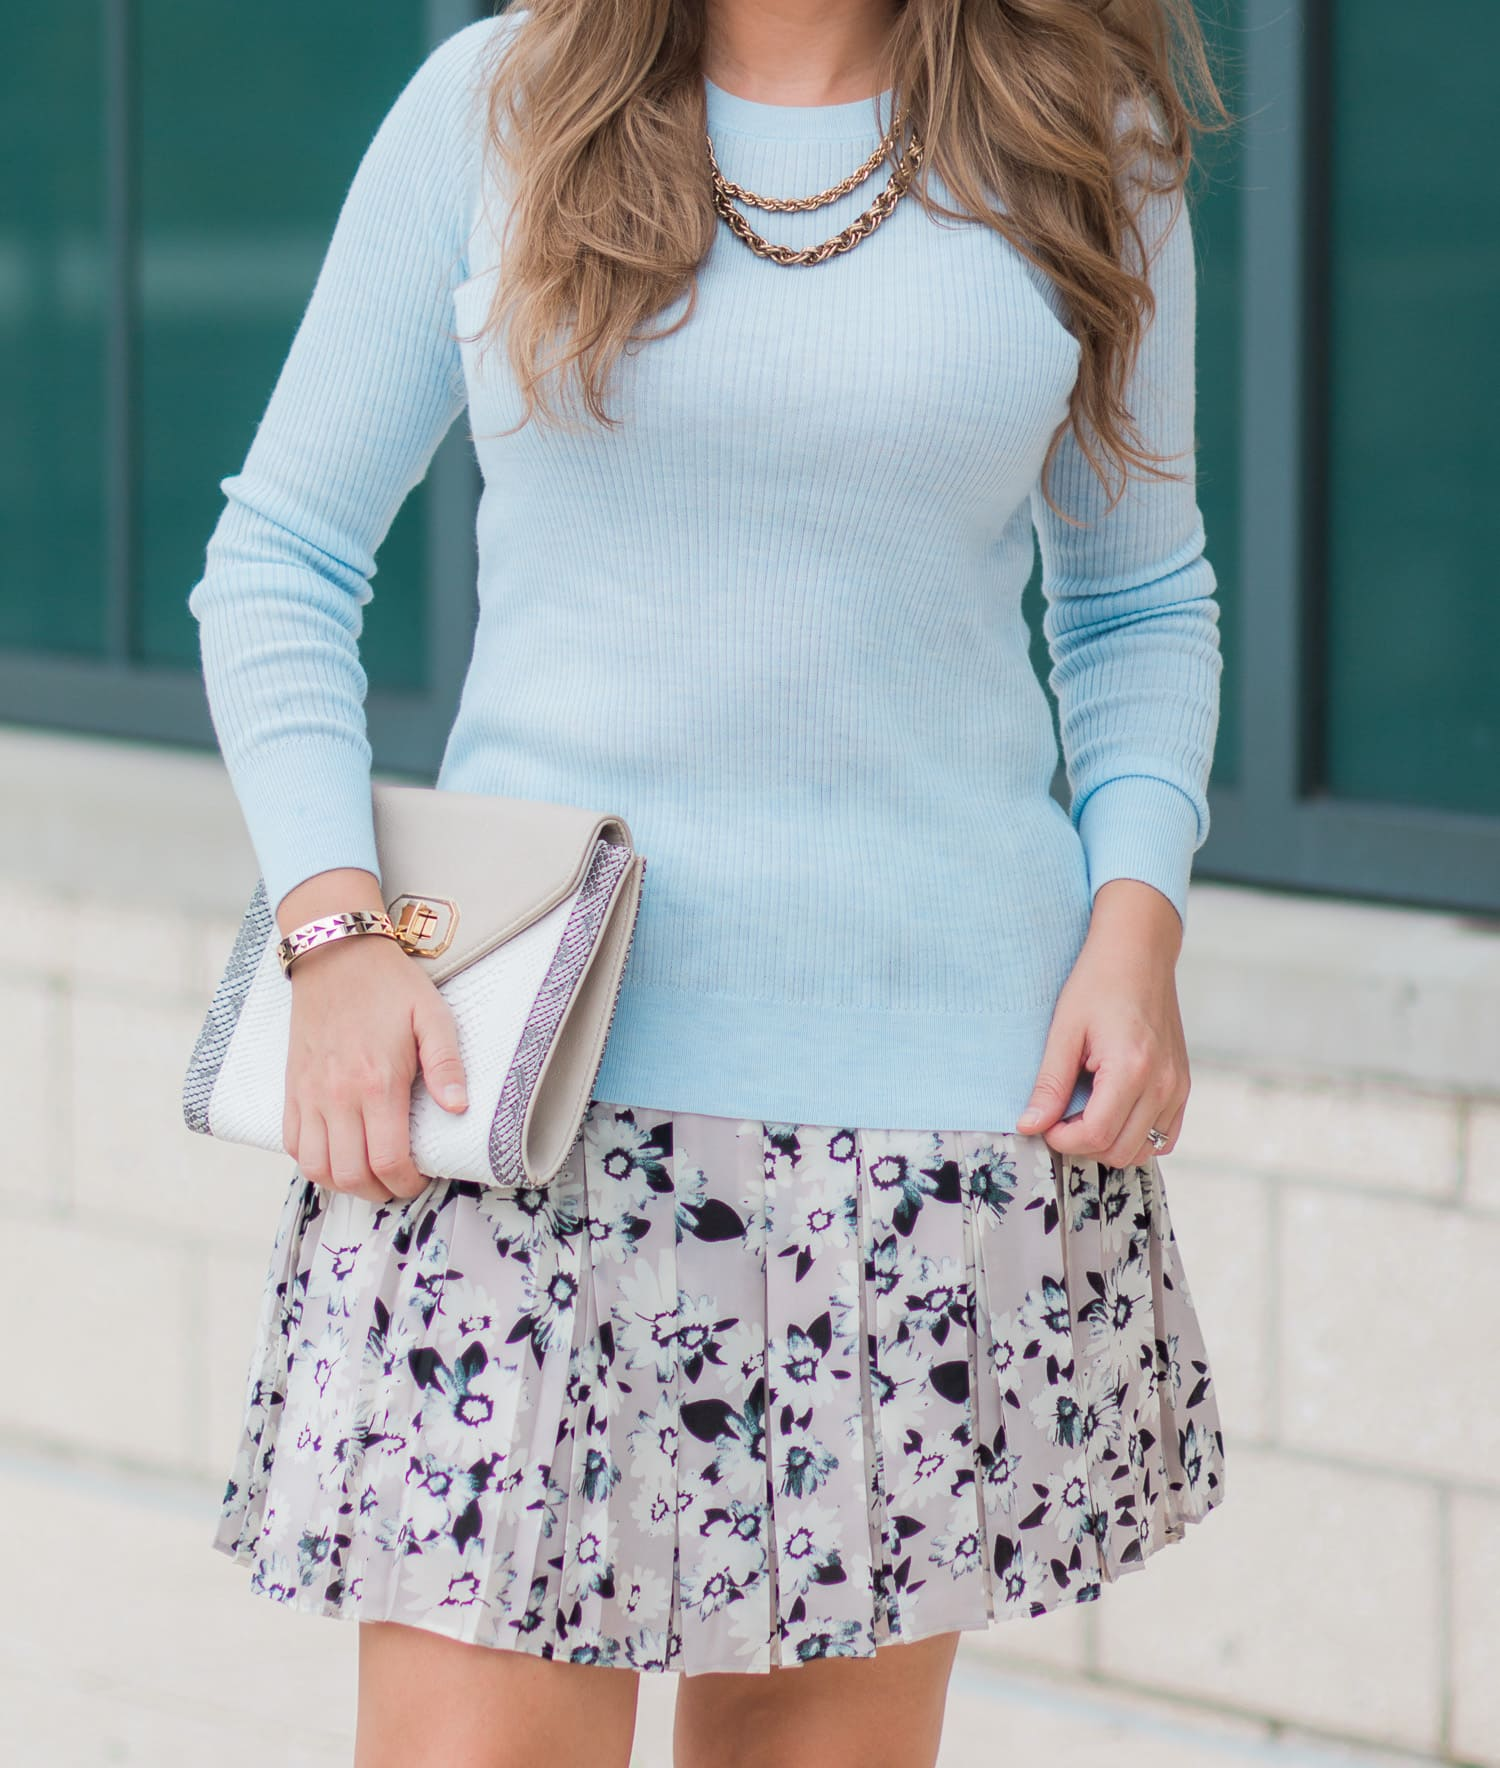 Banana Republic pleated floral skirt, ribbed baby blue sweater, nude clutch, Stella & Dot Addison cuff, gold chain necklace, and nude bow heels. Such a perfect transitional summer to fall outfit idea. Click through to see the full outfit from blogger Ashley Brooke Nicholas.